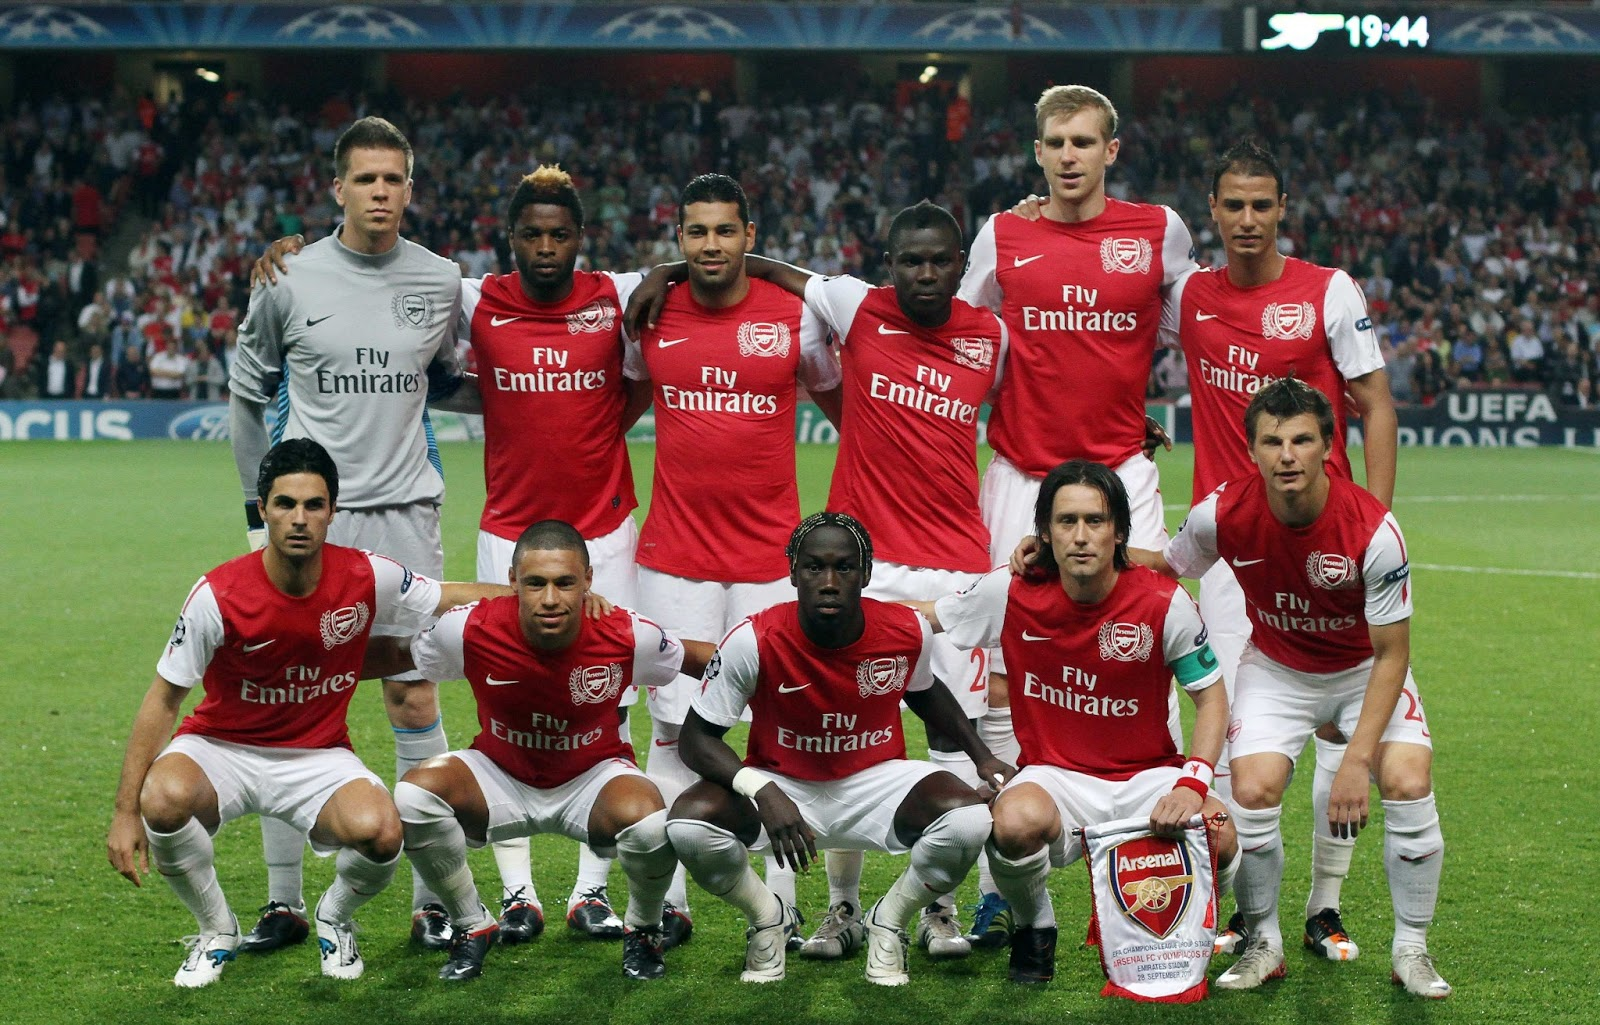 wallpapers hd for mac: Arsenal FC Wallpaper 2013